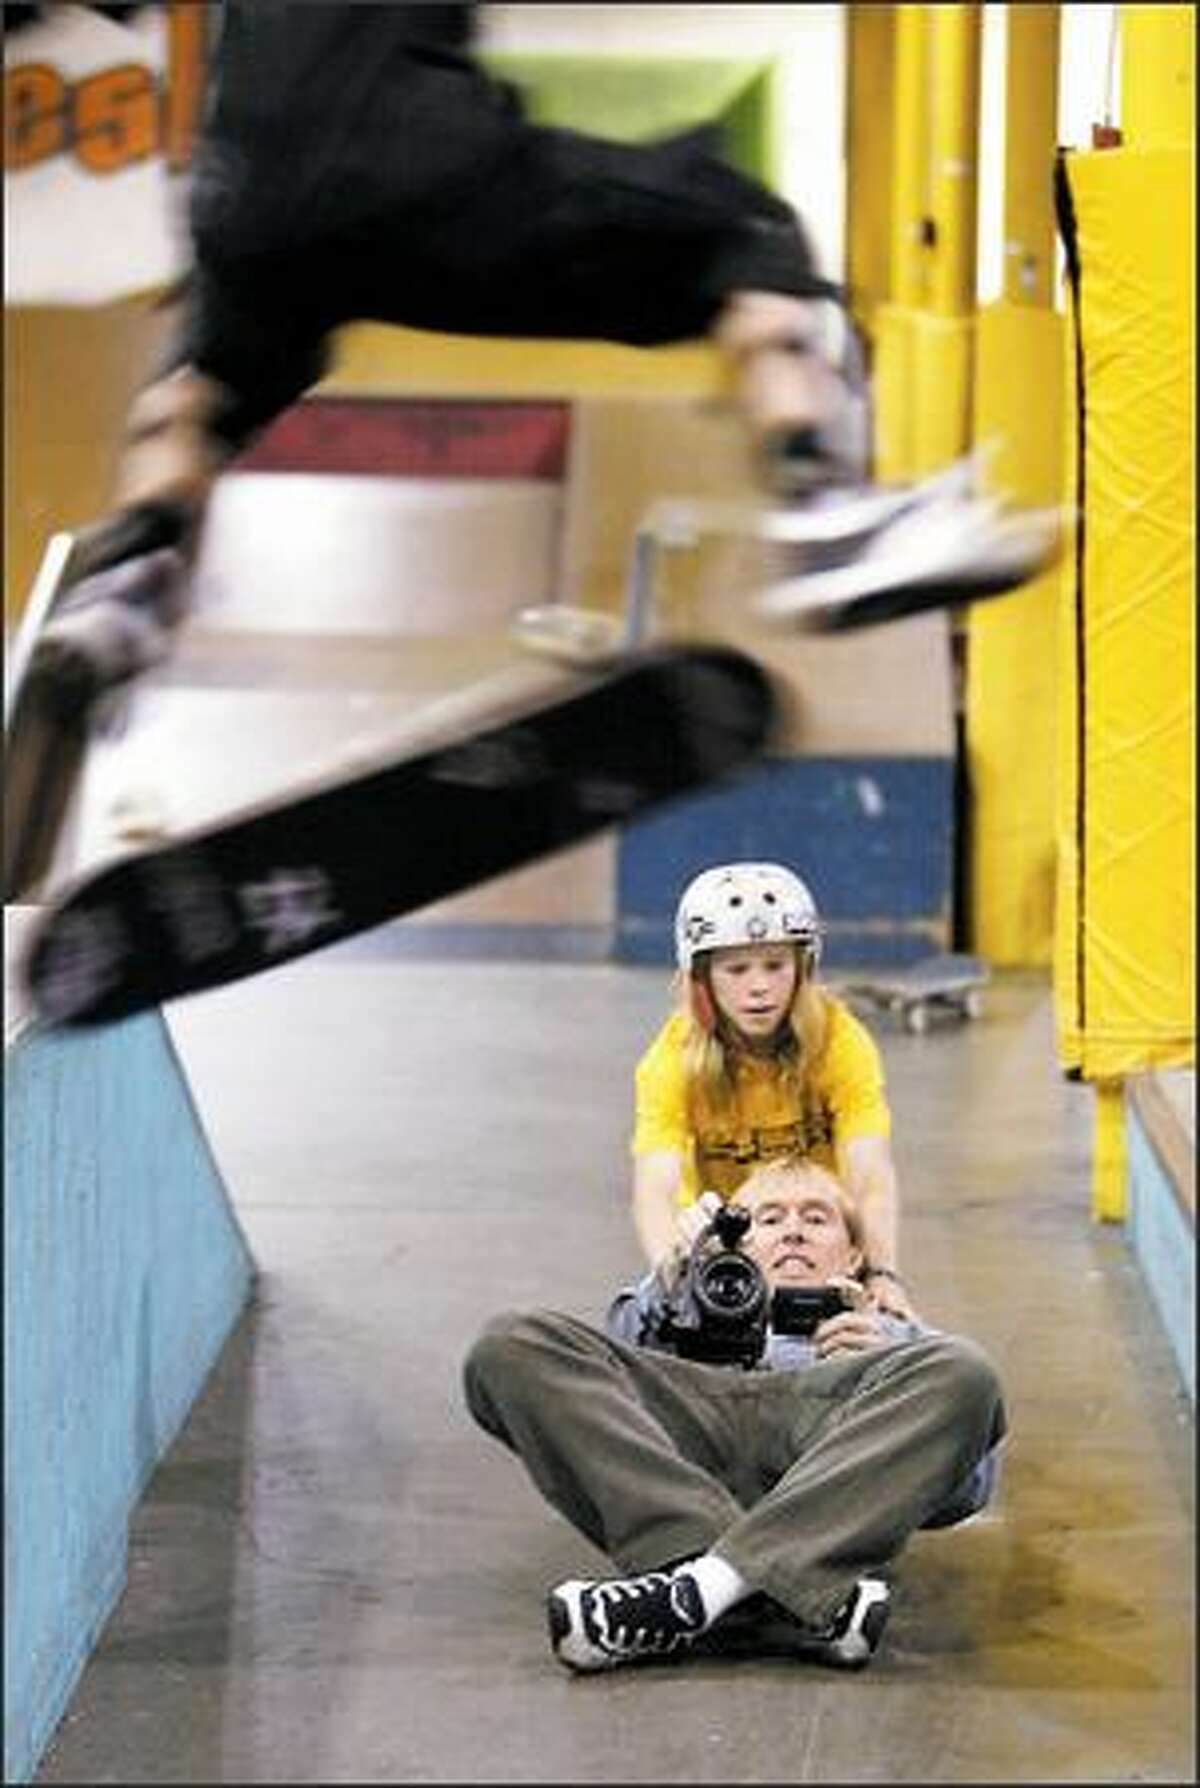 Boarder phenom Skyler Siljeg, 12, pushes Rod Parmenter so he can follow the action of Mitchie Brusco, 9, for the latest DVD in his